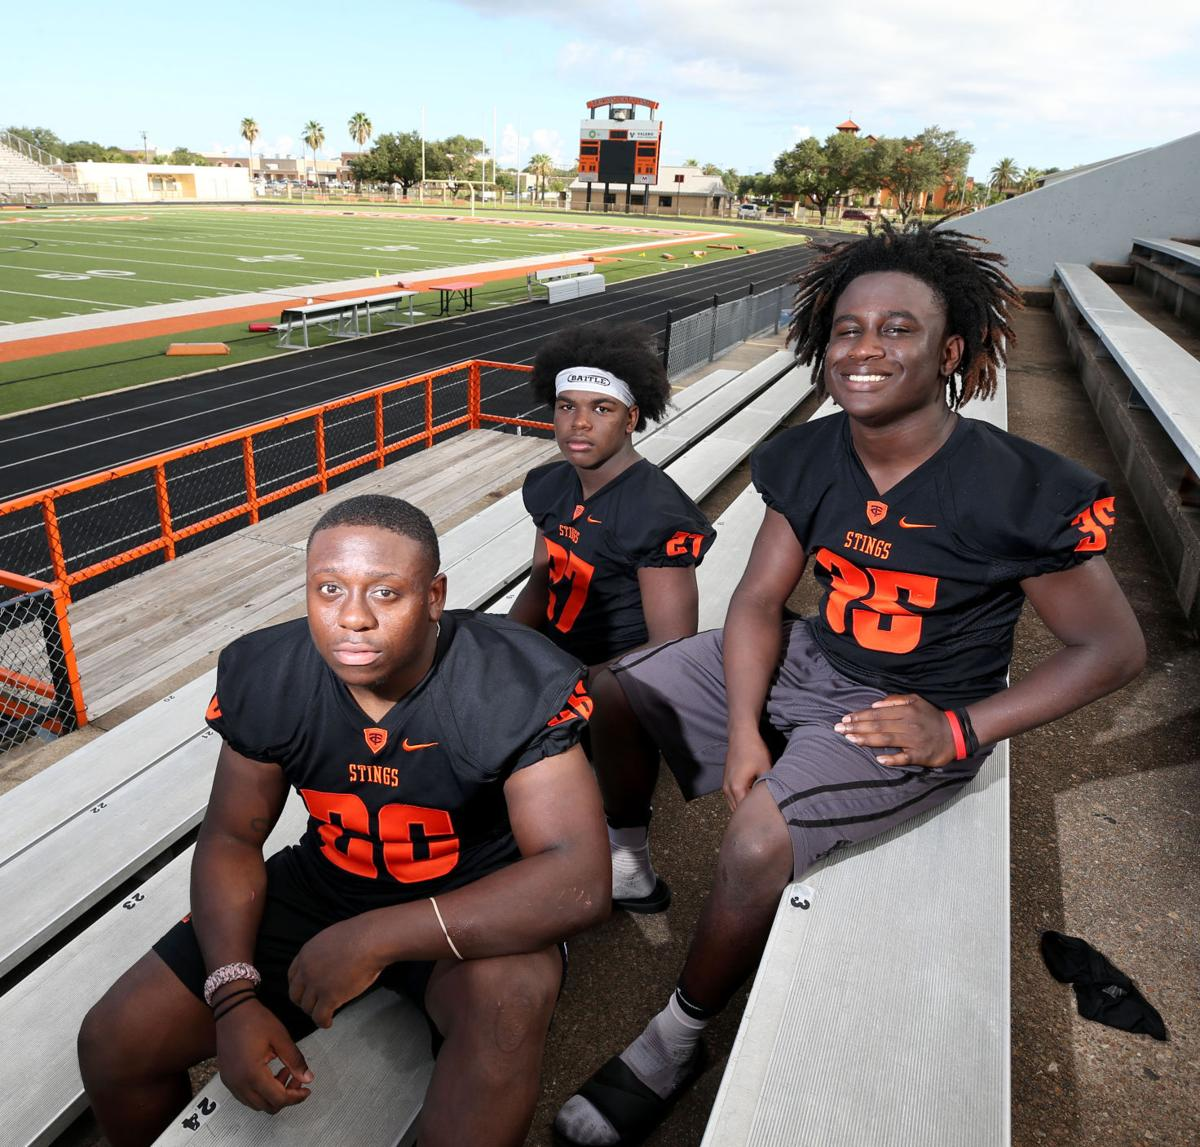 Texas City preparing for showdown with Gators